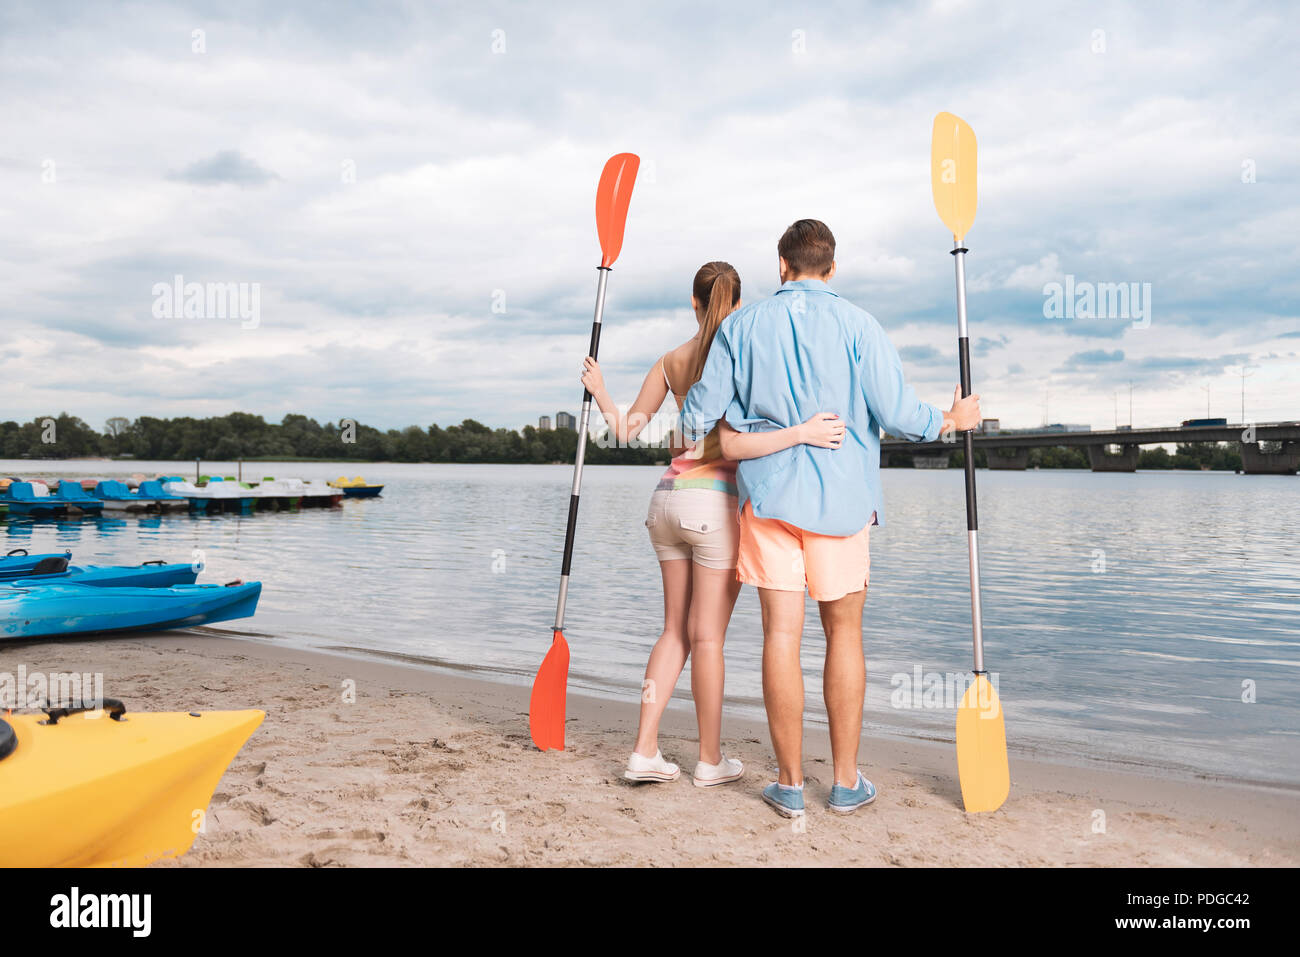 Young couple spending their leisure time near the waterway - Stock Image